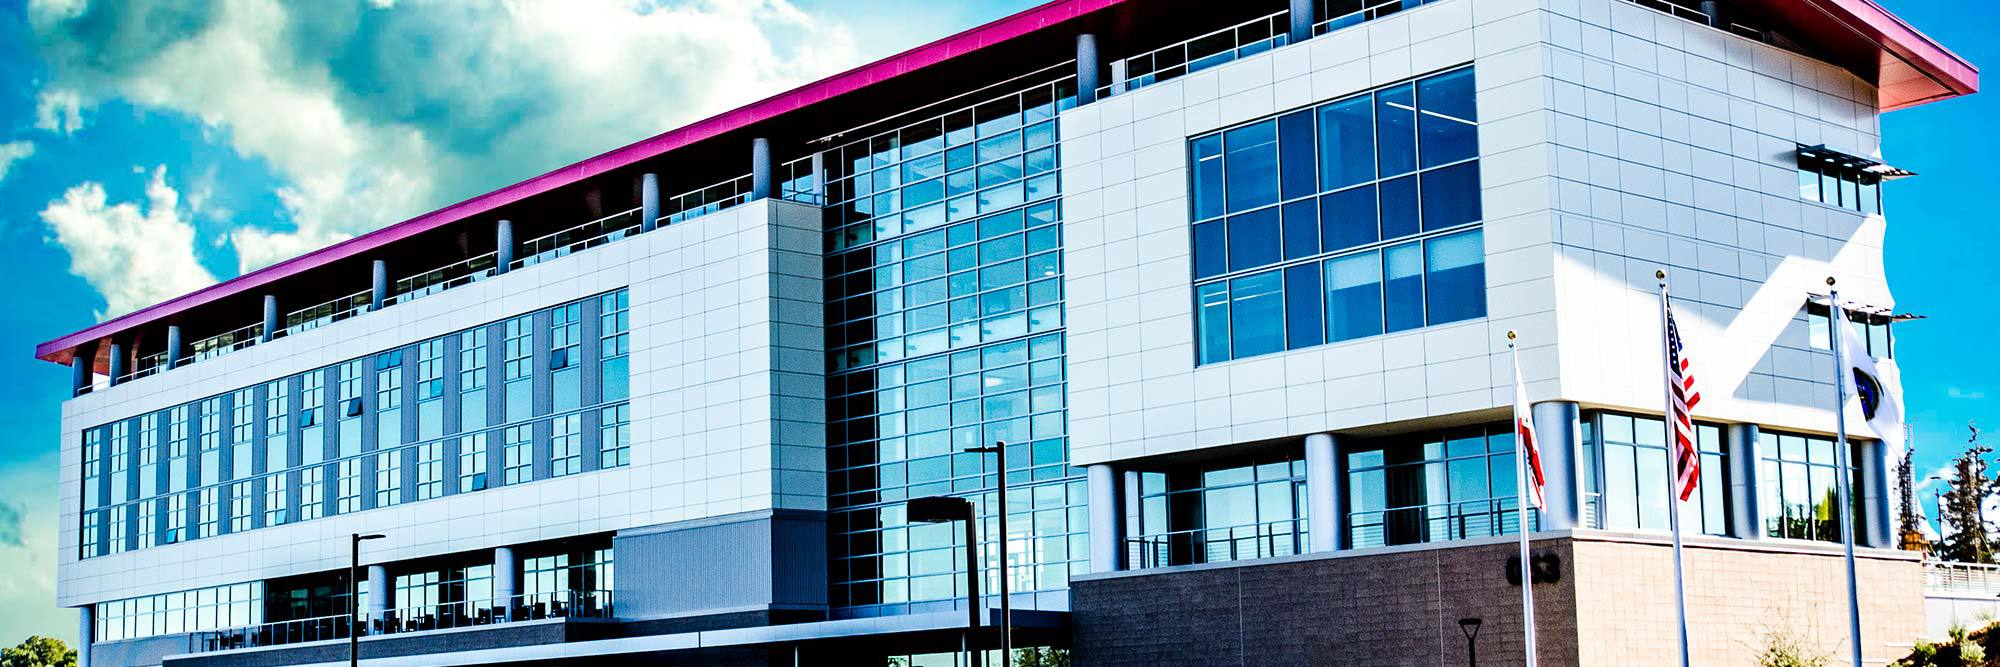 Products alumawall leading edge panel systems alumawall products partners nvjuhfo Image collections